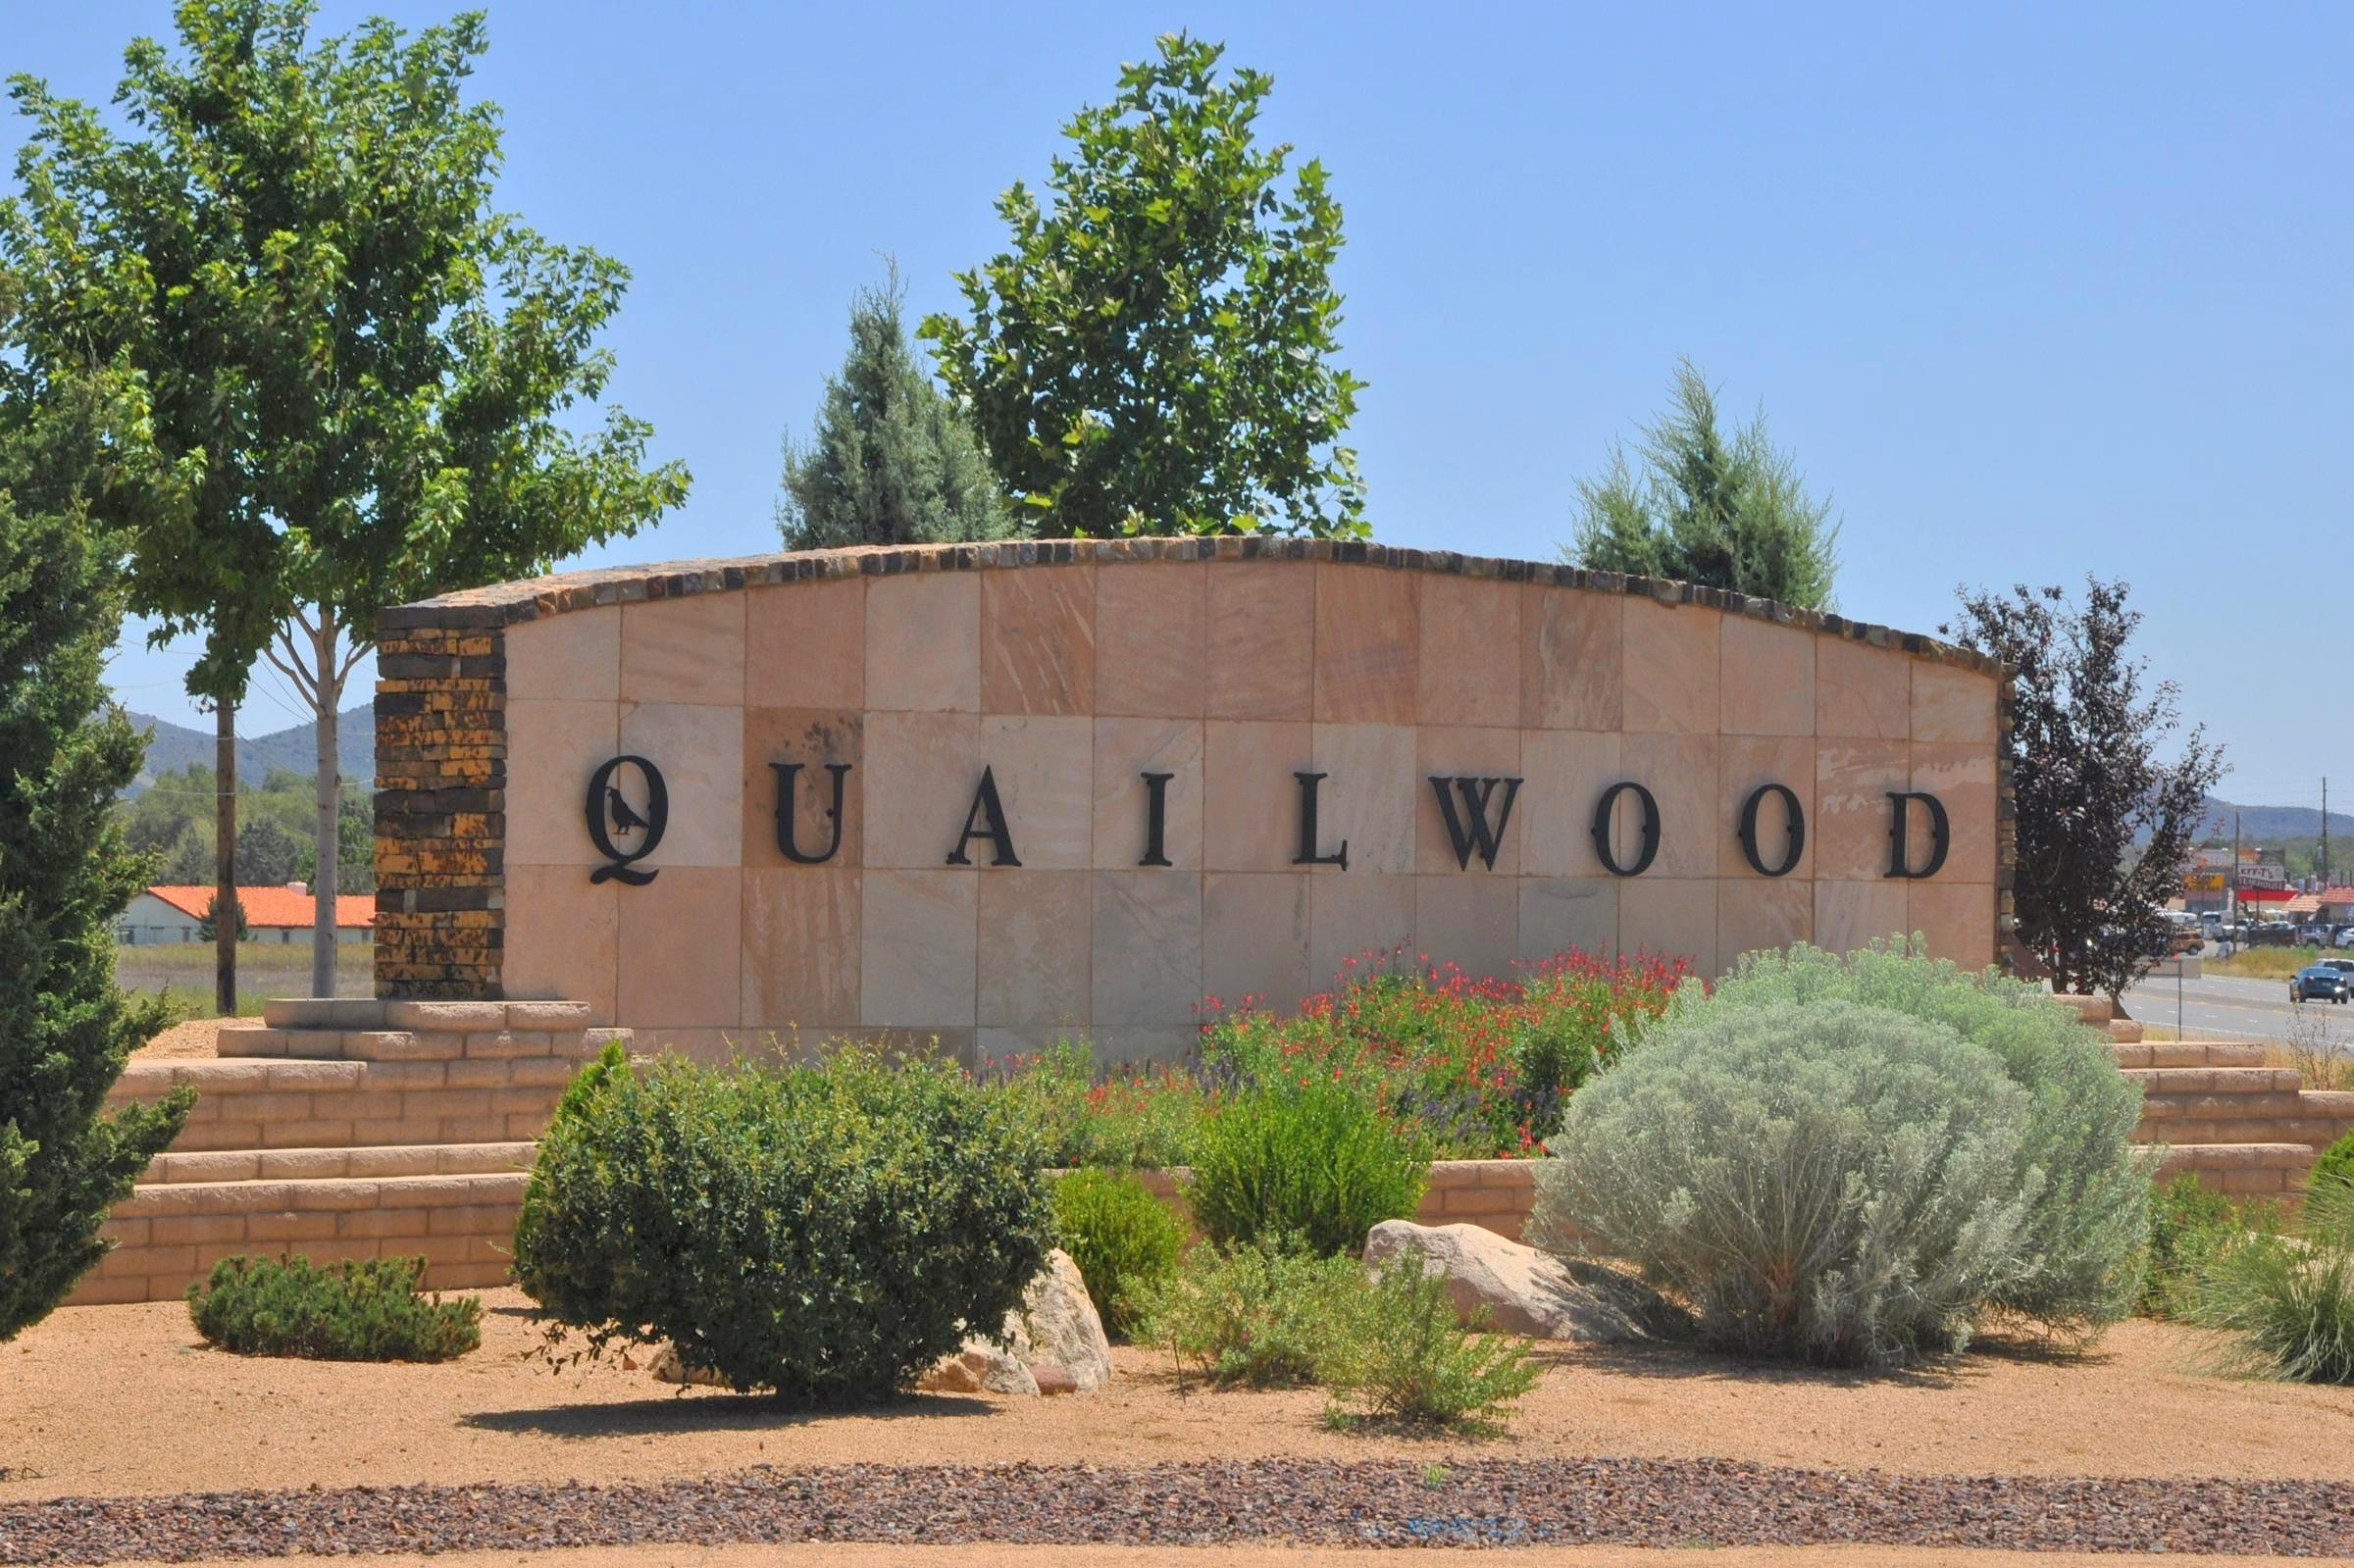 Homes for Sale Quailwood Prescott Valley